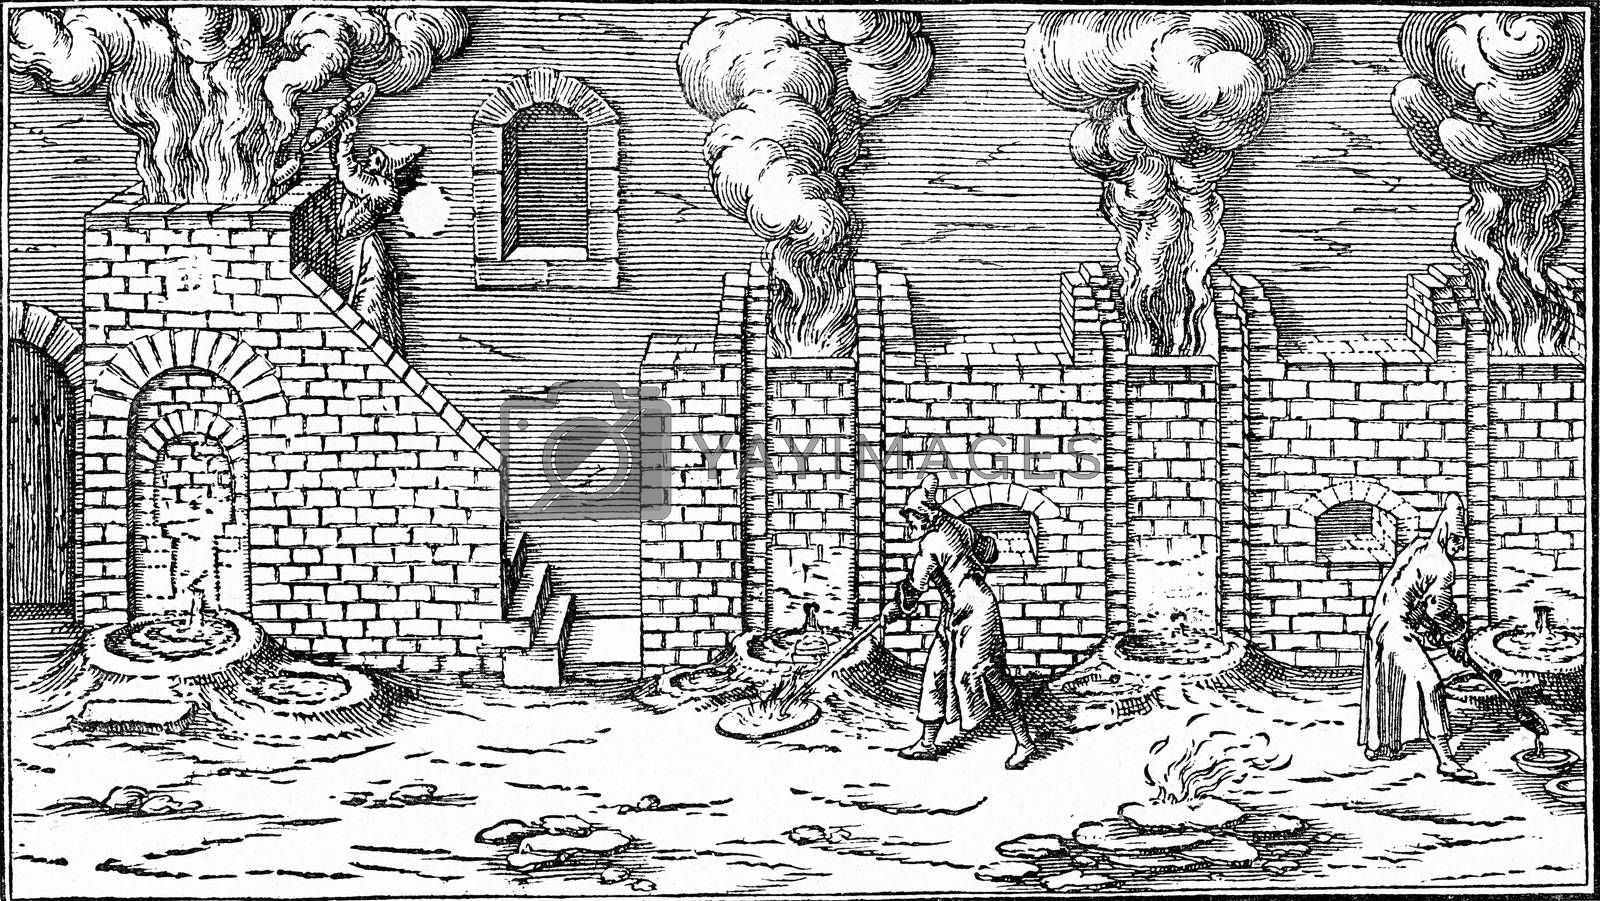 A blast furnace in the seventeenth century, vintage engraved illustration. From the Universe and Humanity, 1910.